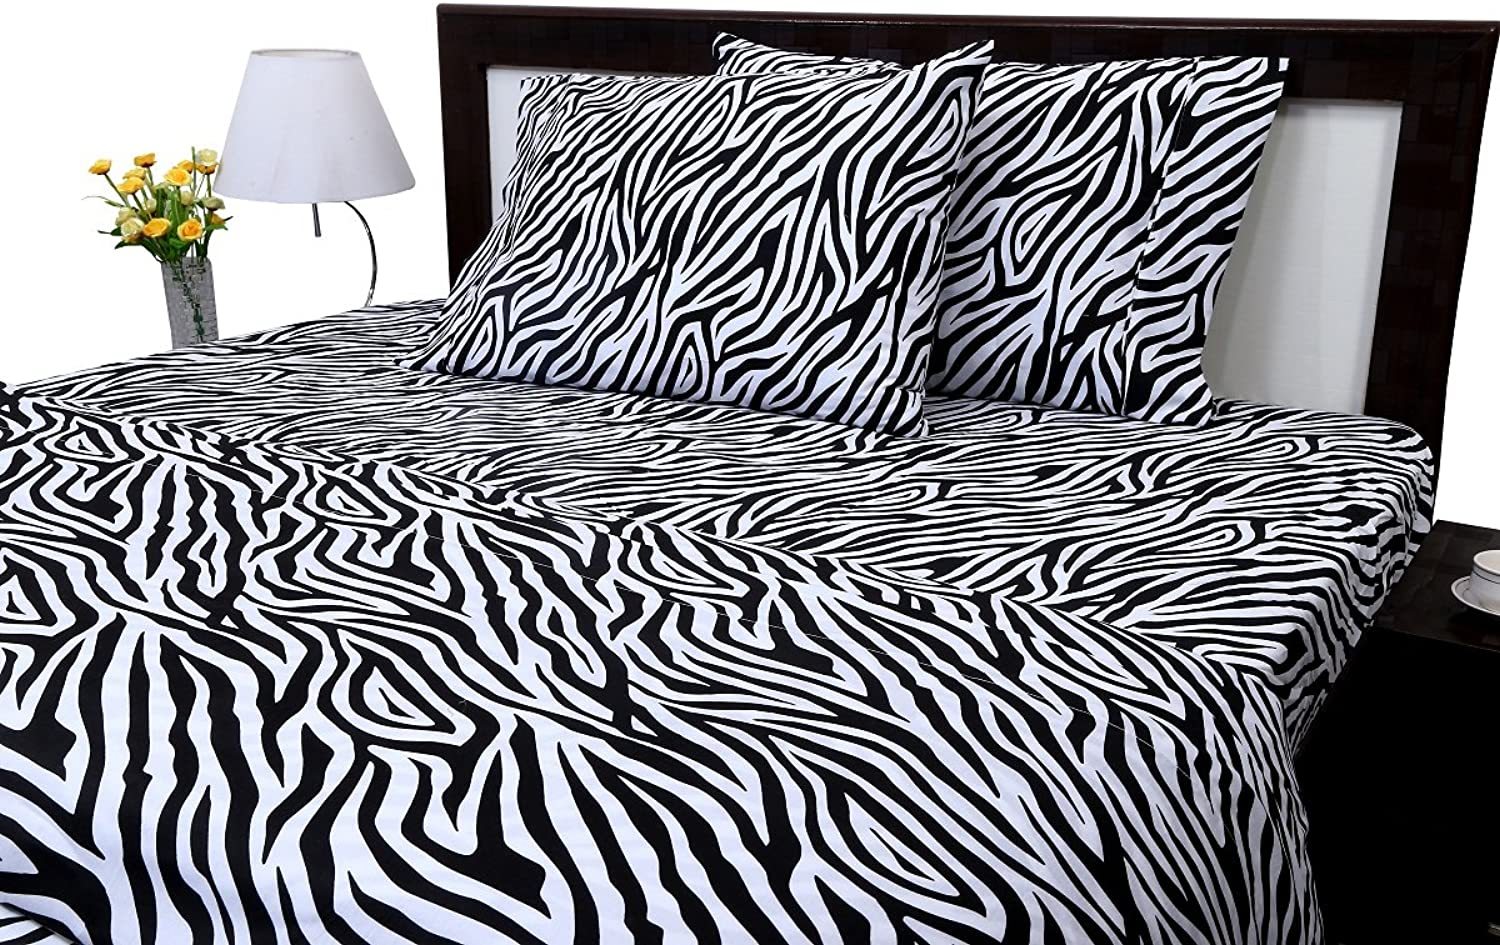 Zebra Print Twin Size Ultra Soft Natural 4 PCs Bed Sheet Set 16  Deep Elastic All Round 100% Cotton 400-Thread-Count Extremely Stronger Durable By Aashi